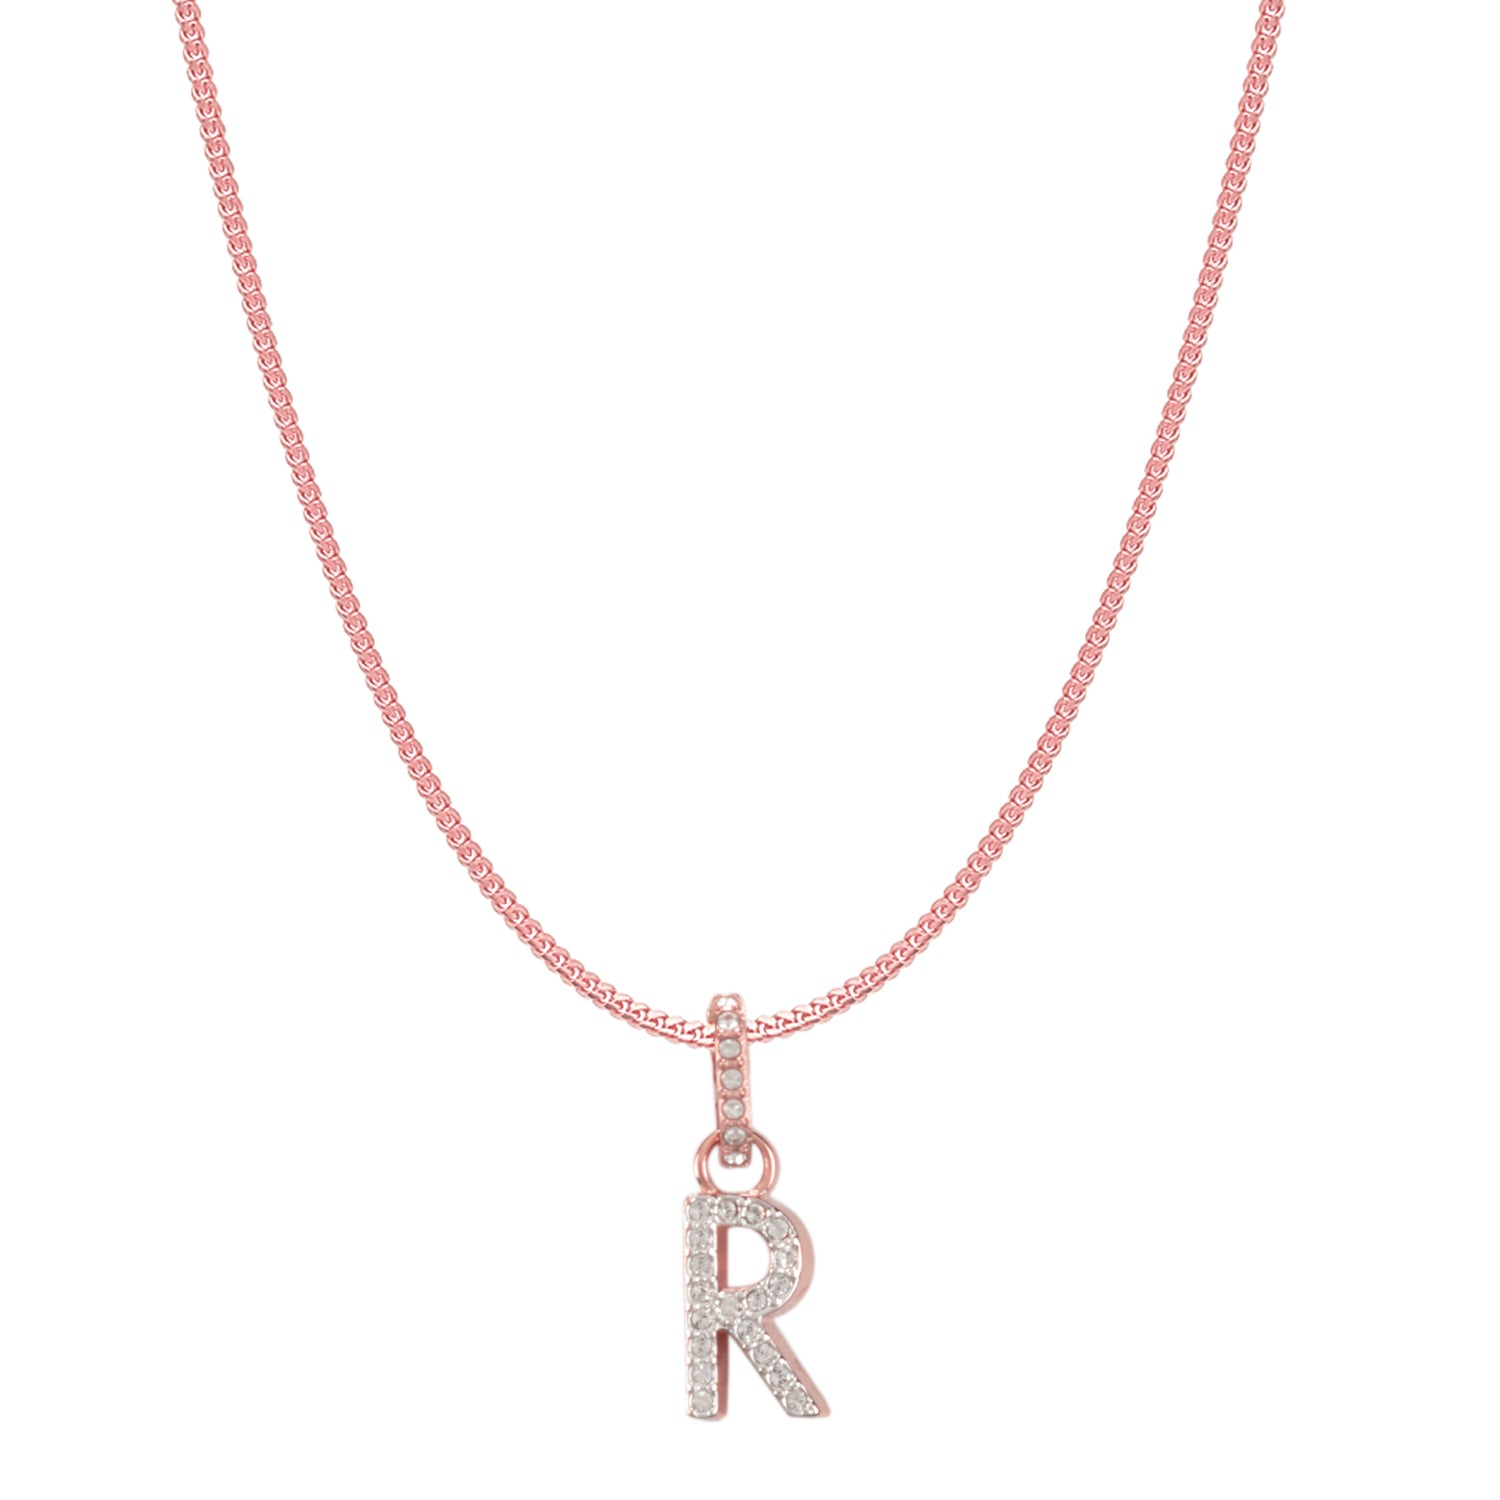 Swarovski Remix Collection R White Charm In Rose-Gold Tone Plated | Shop Luxury Swarovski Charm Online